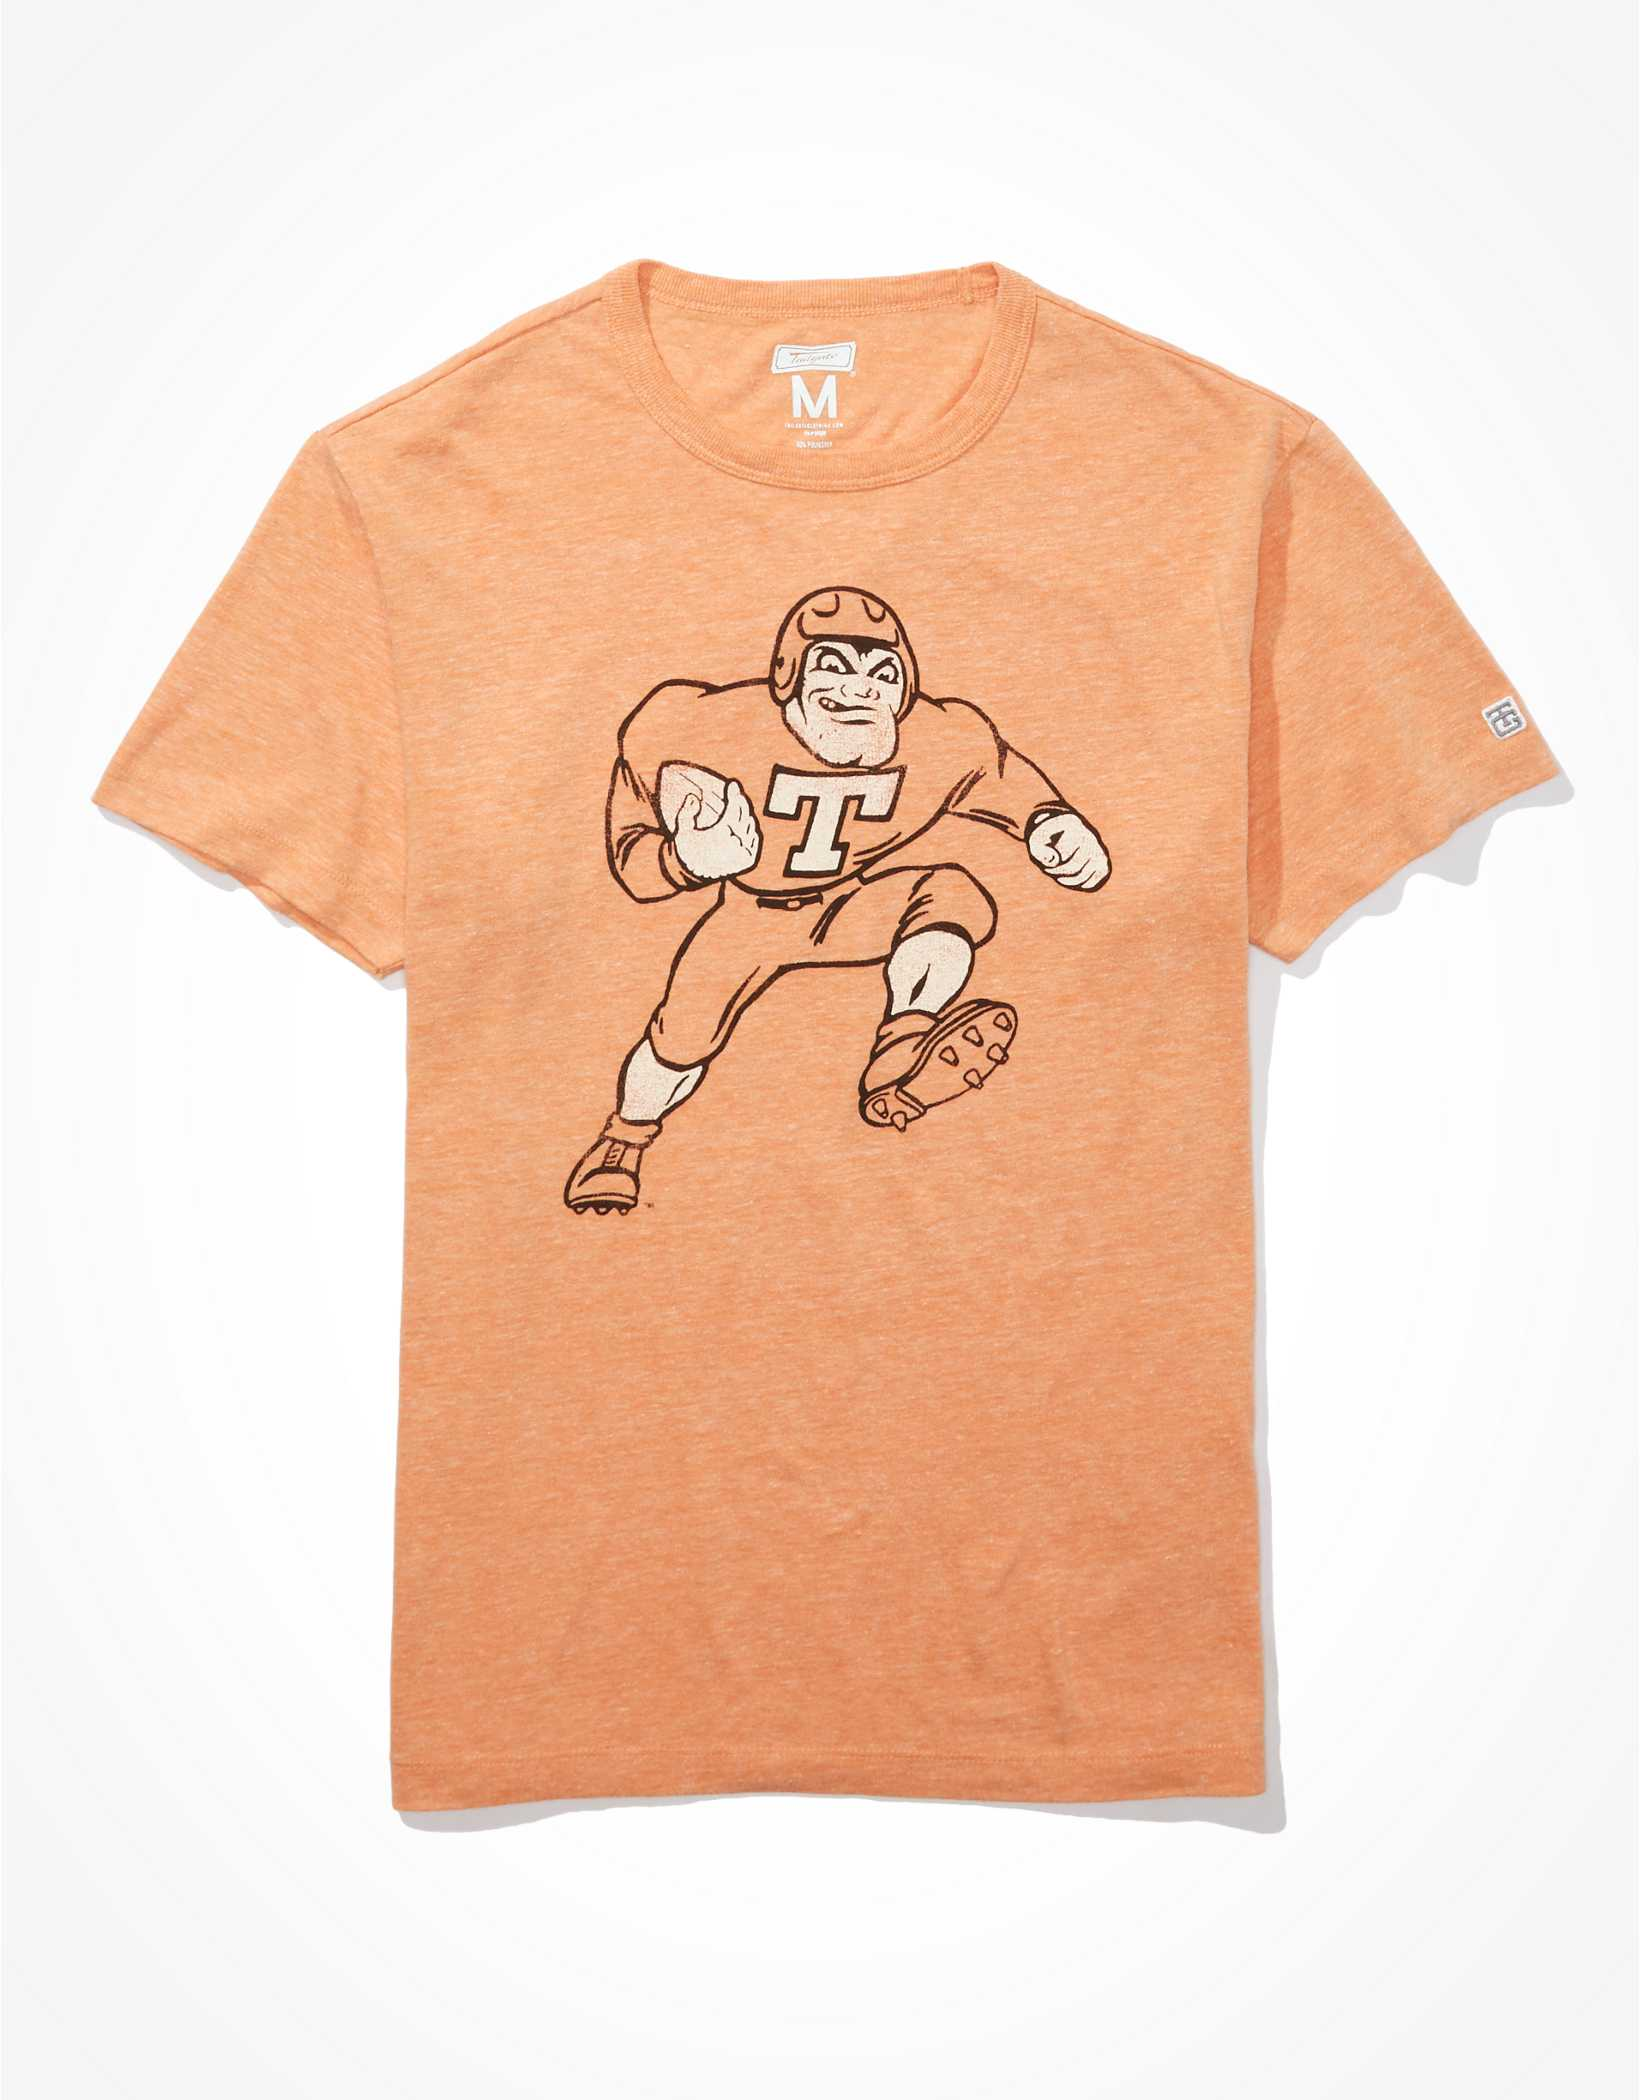 Tailgate Men's Tennessee Vols Football Graphic T-Shirt